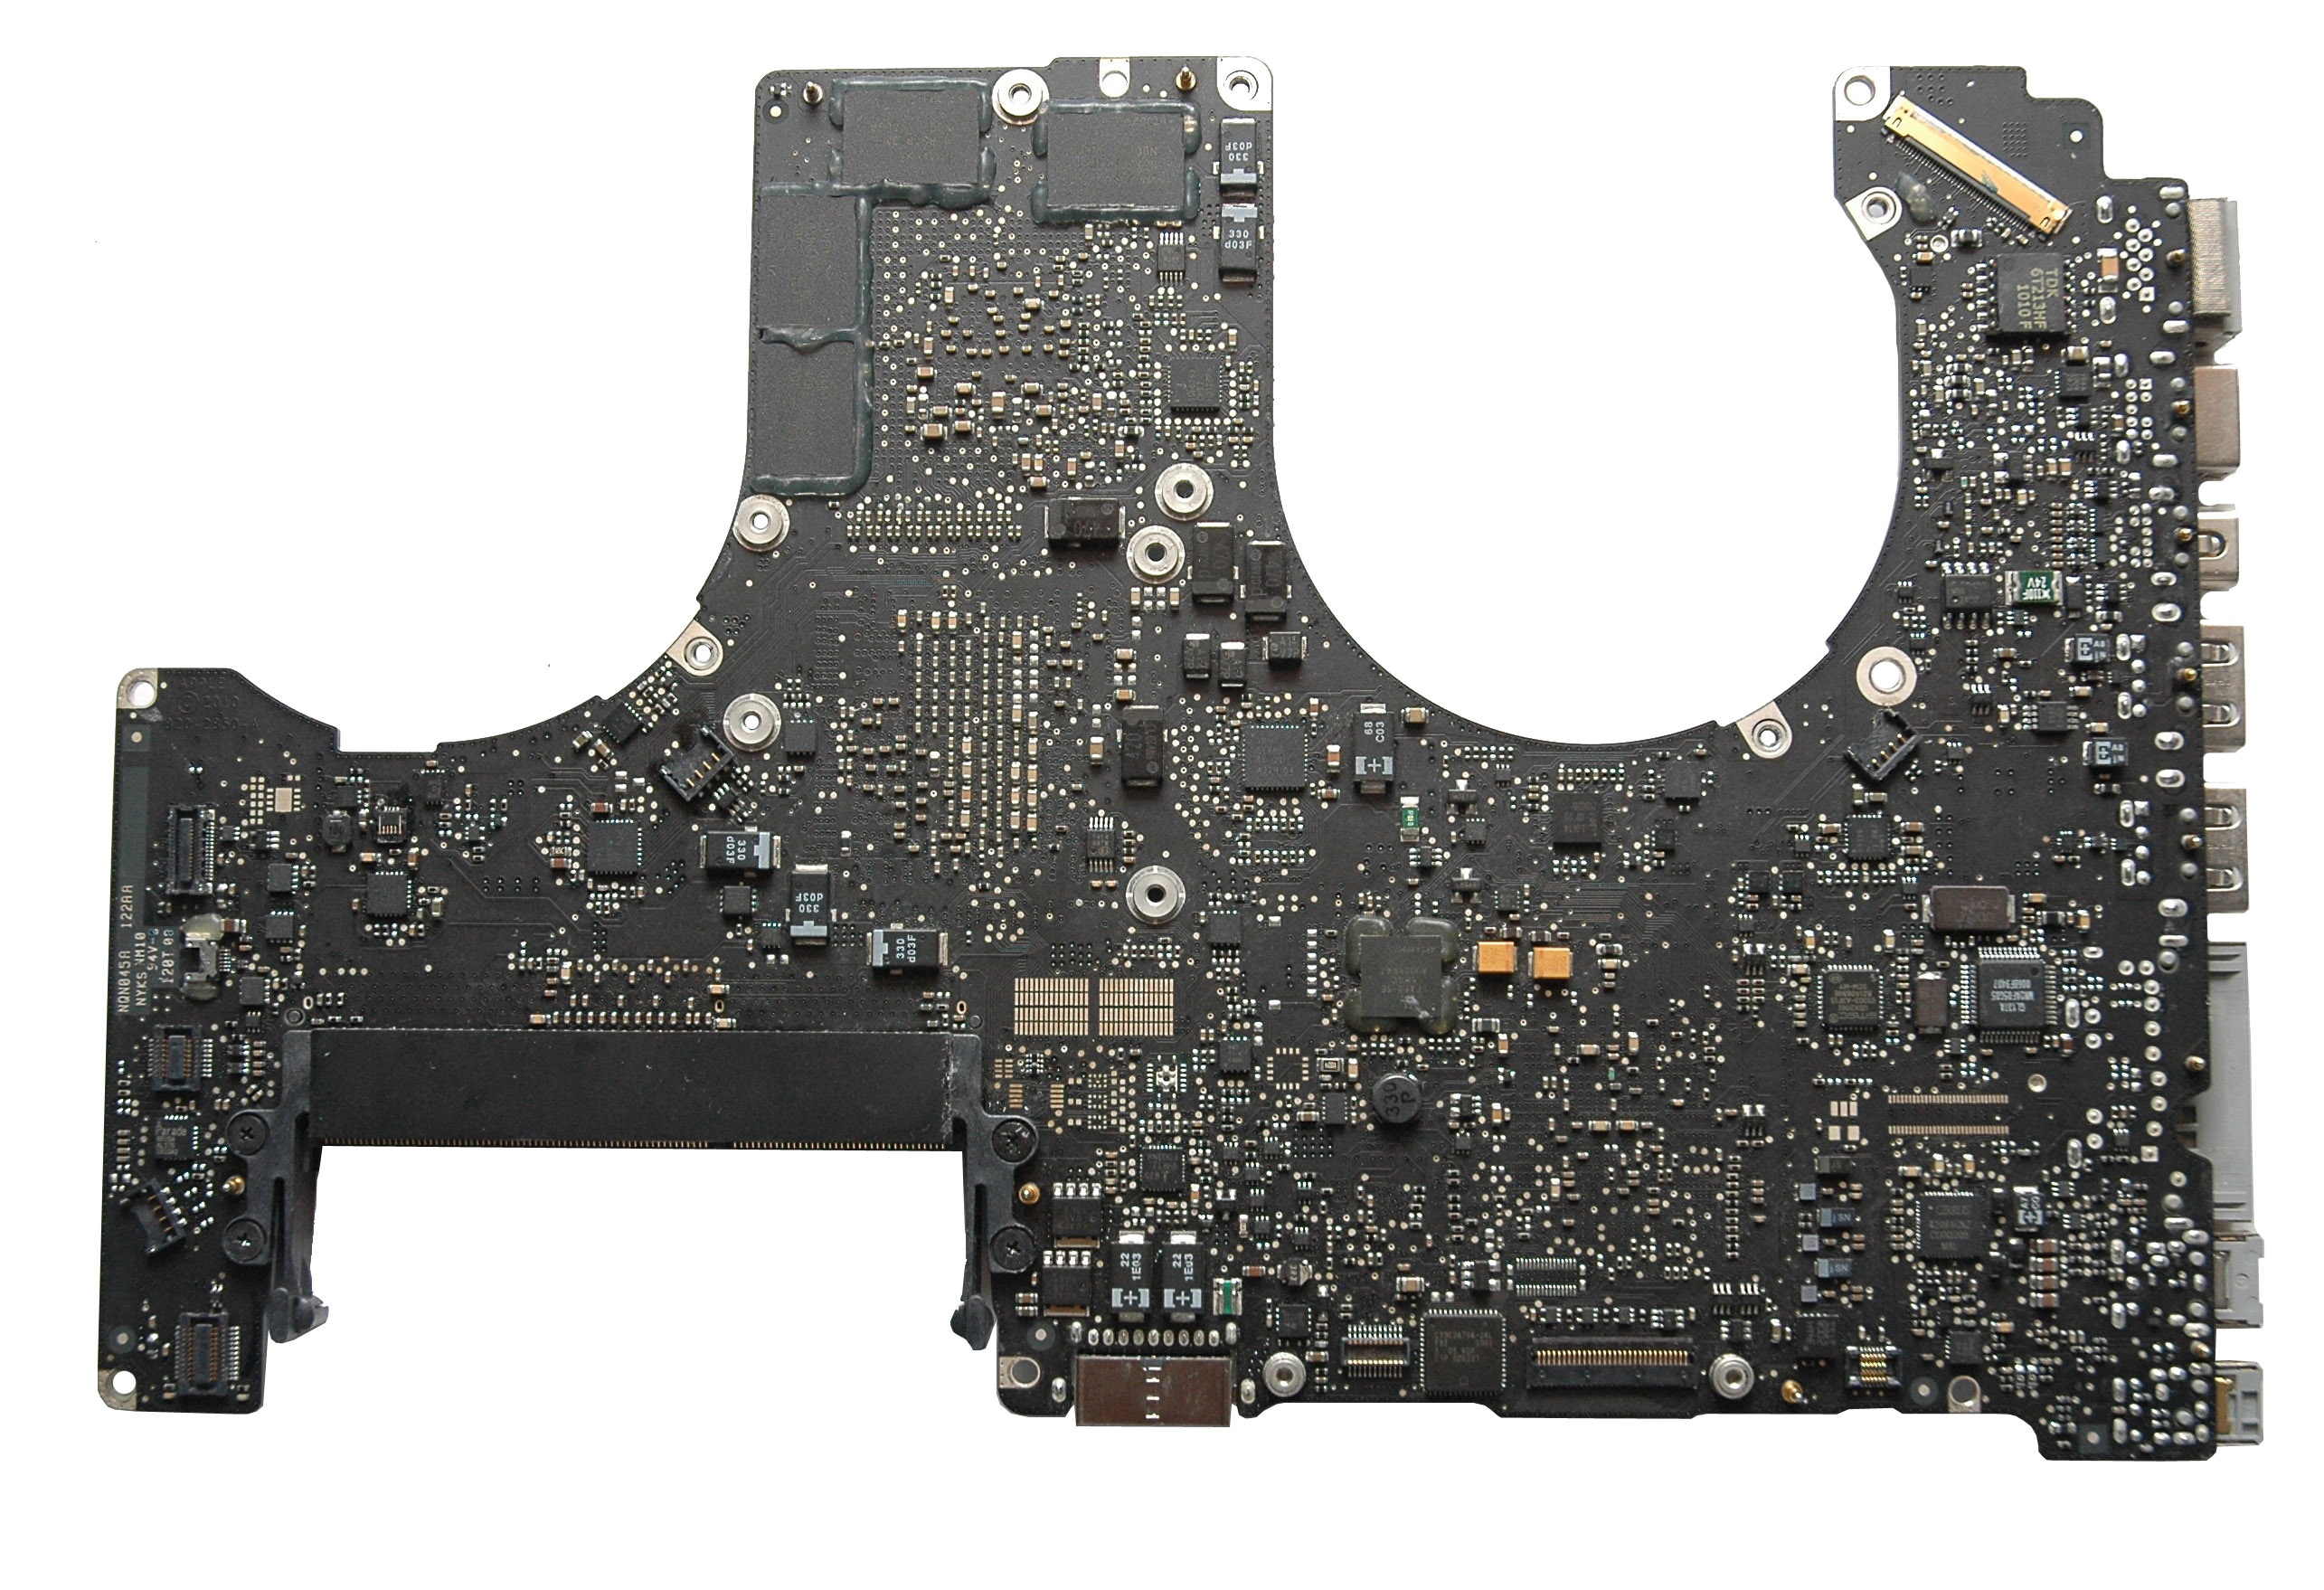 820-2850-A Apple 2.53GHz Logic Board for MacBook Pro 15-Inch Mid 2010 (Refurbished)